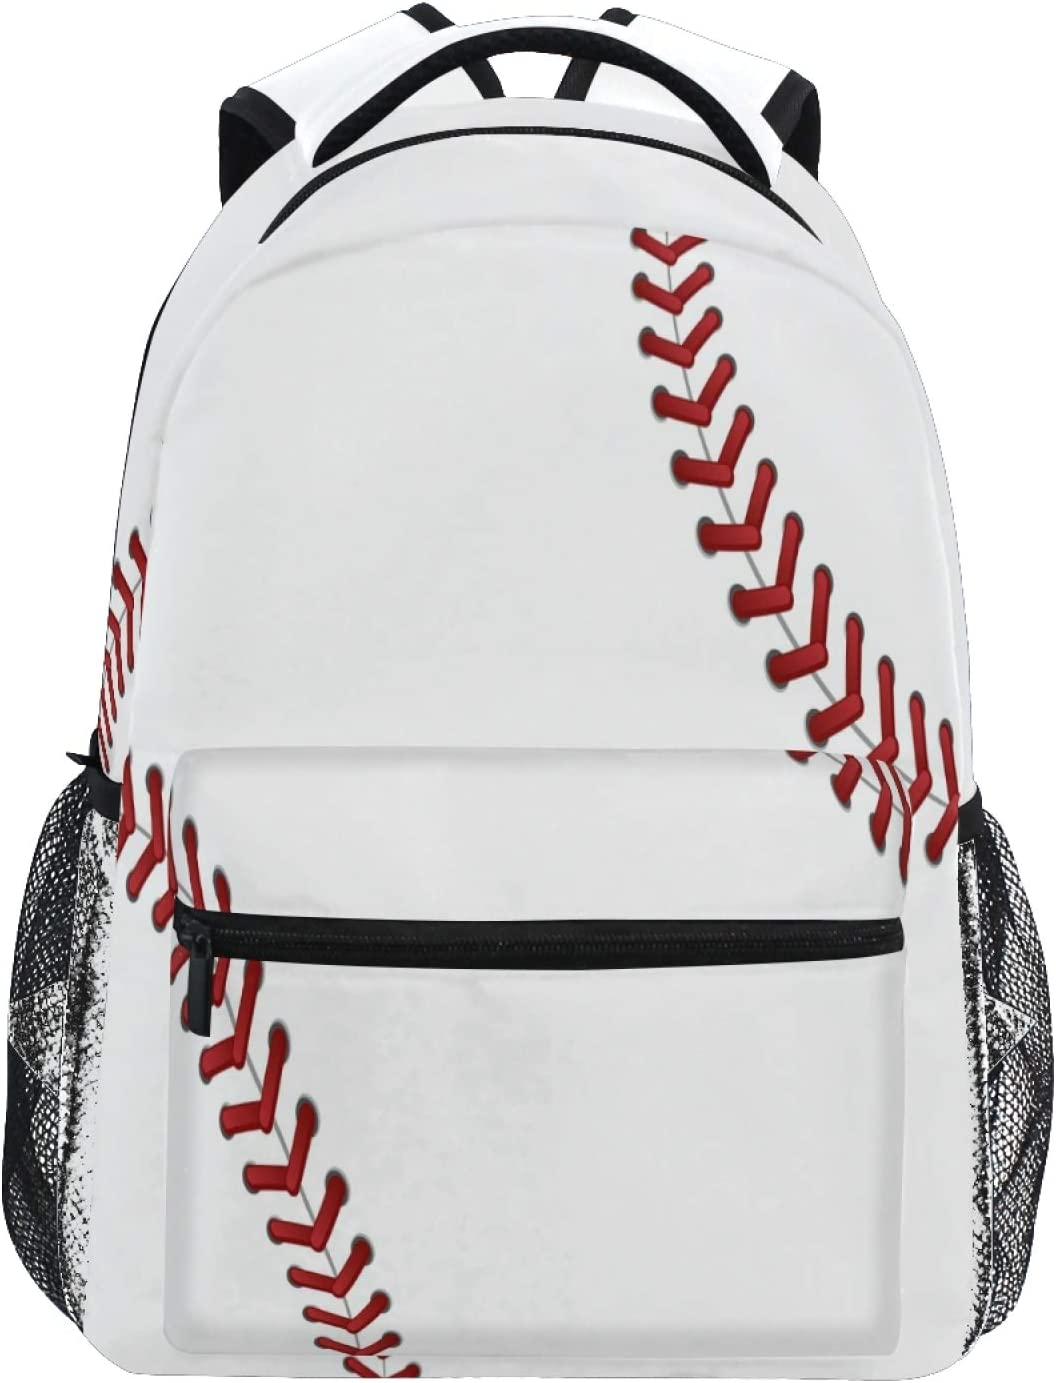 Qilmy Baseball Today's only Laces Backpack Large Resis Backpacks Laptop Chicago Mall Water